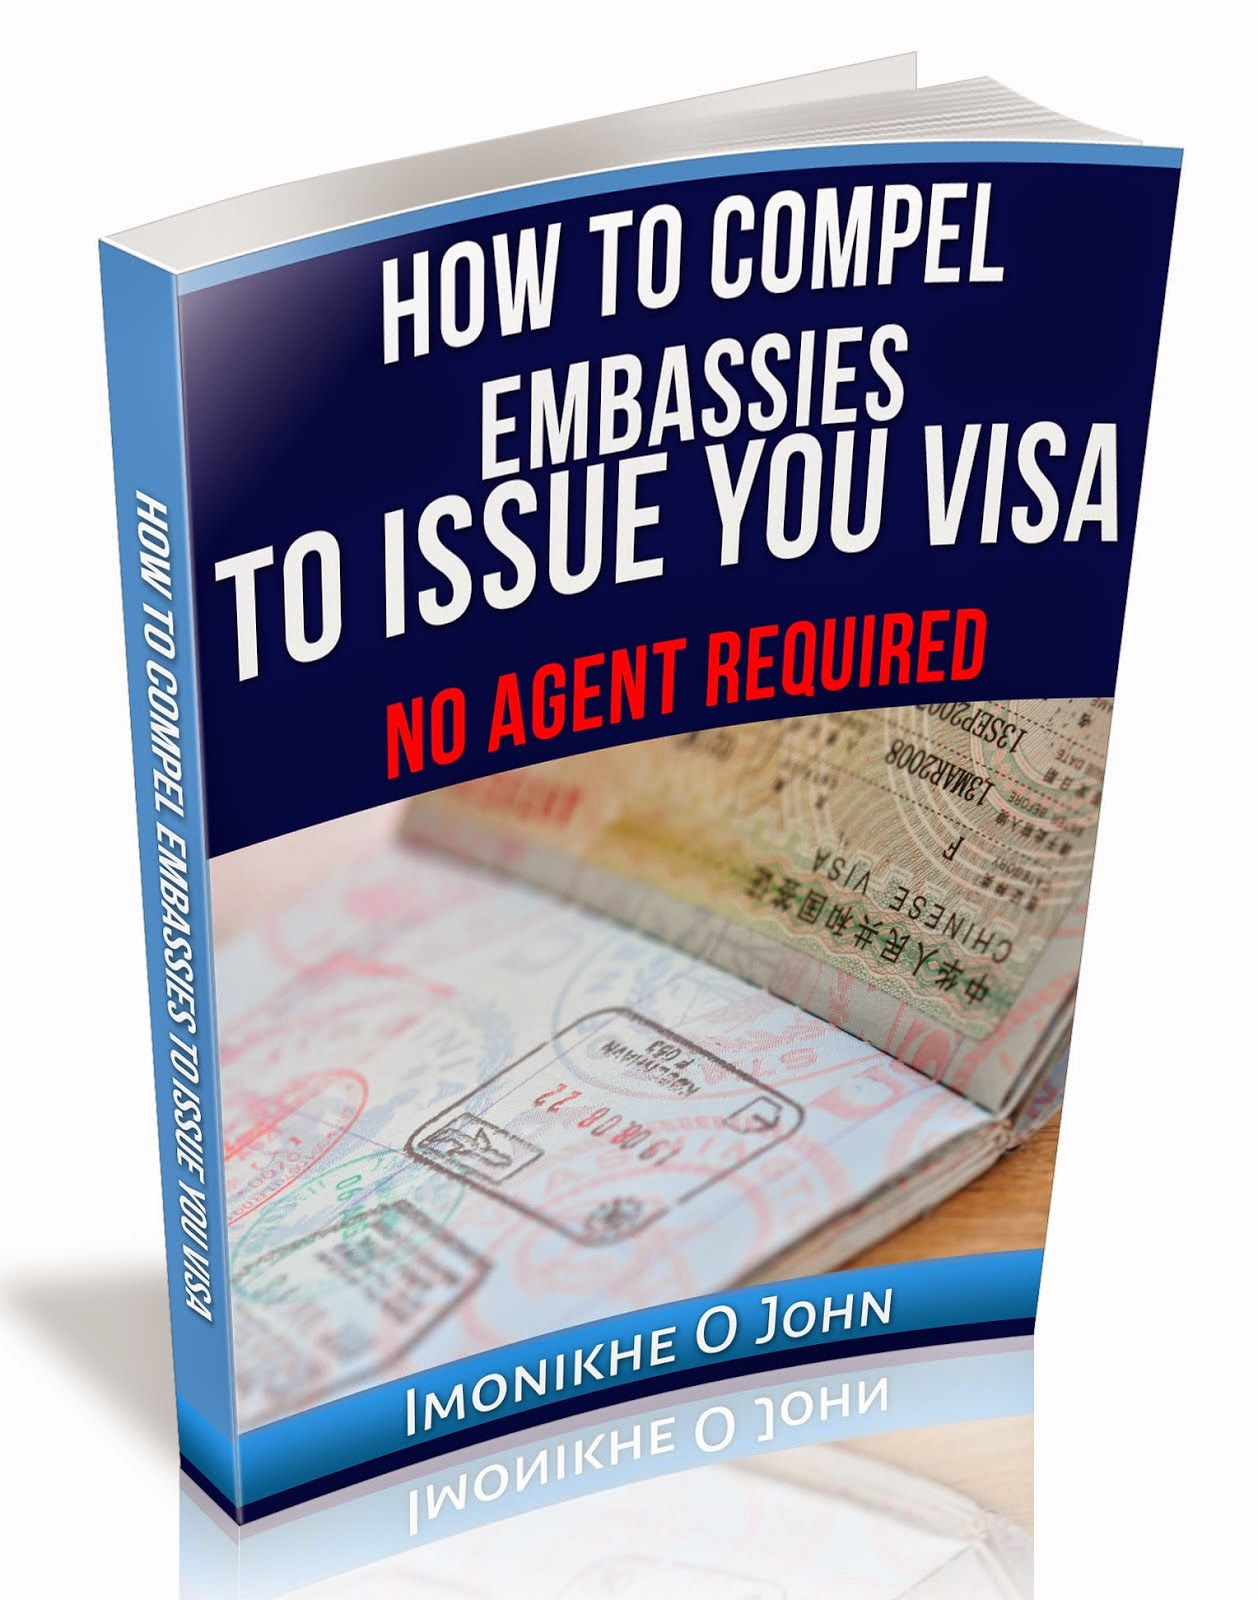 how to compel embassies to issue you visa